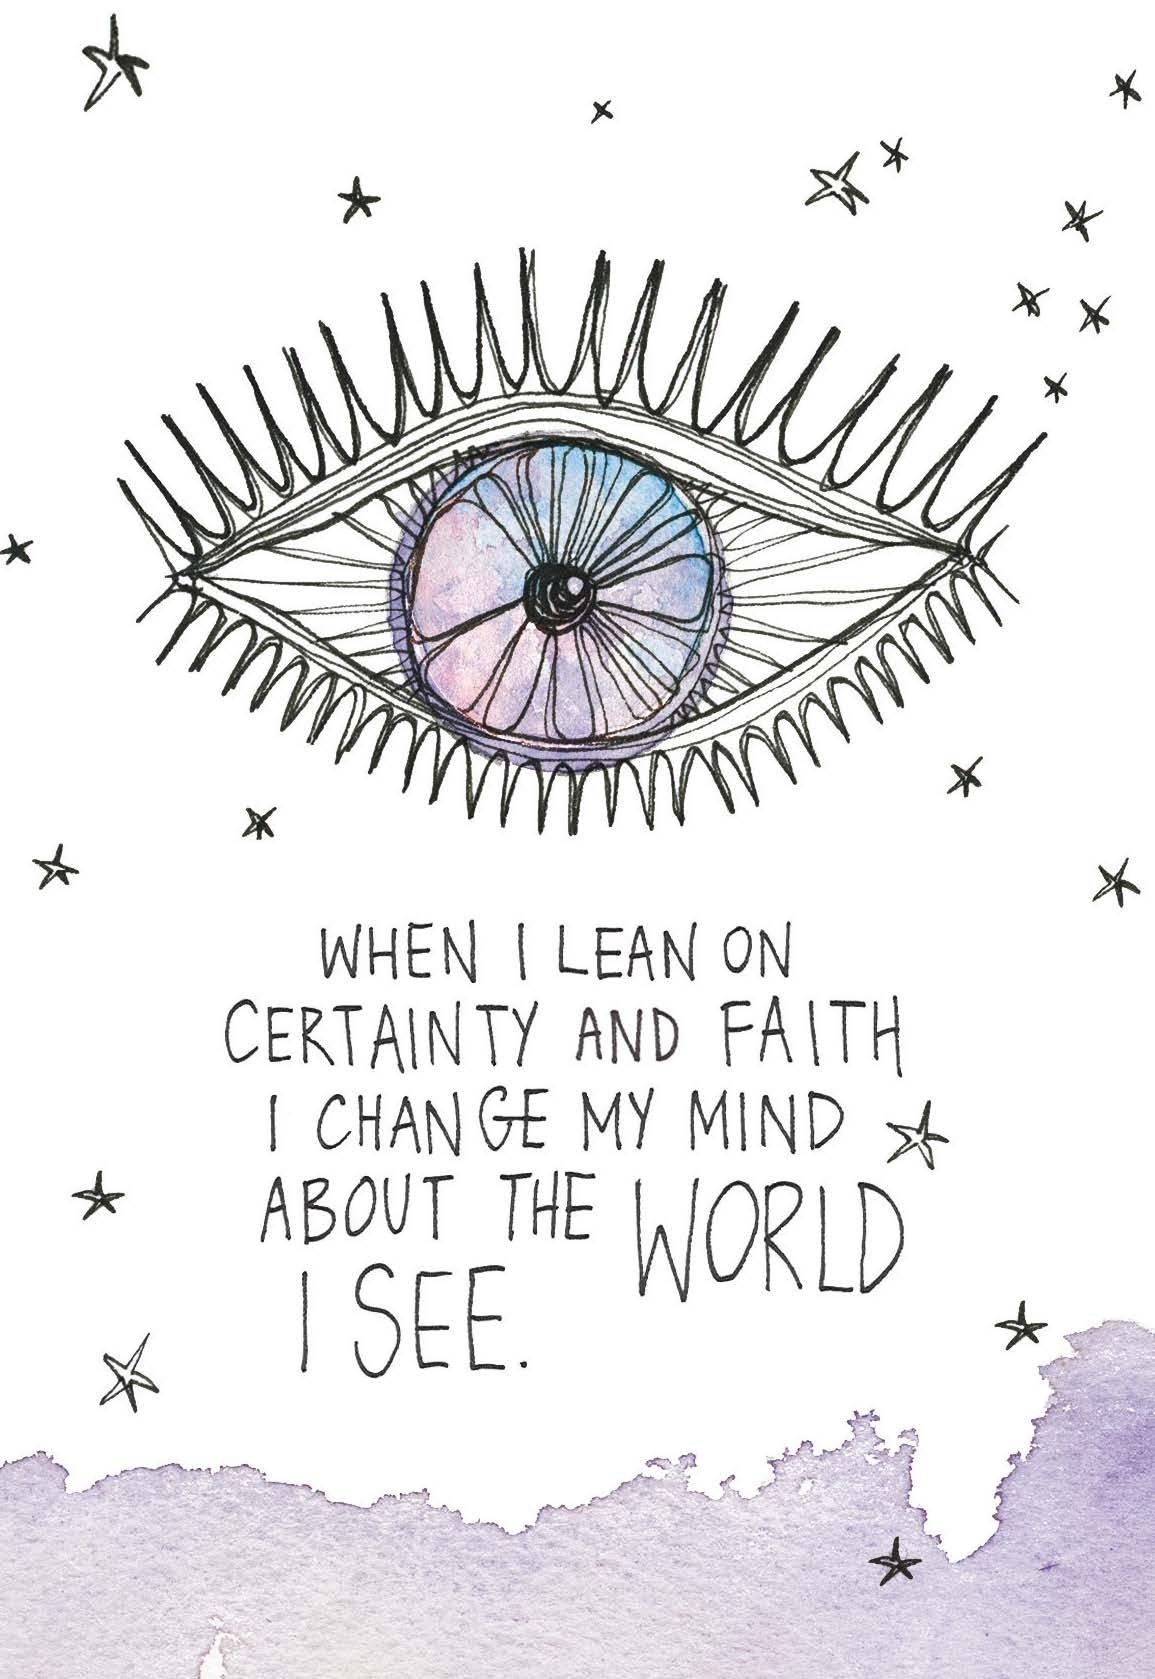 When I lean on certainty and faith, I change my mind about the world I see